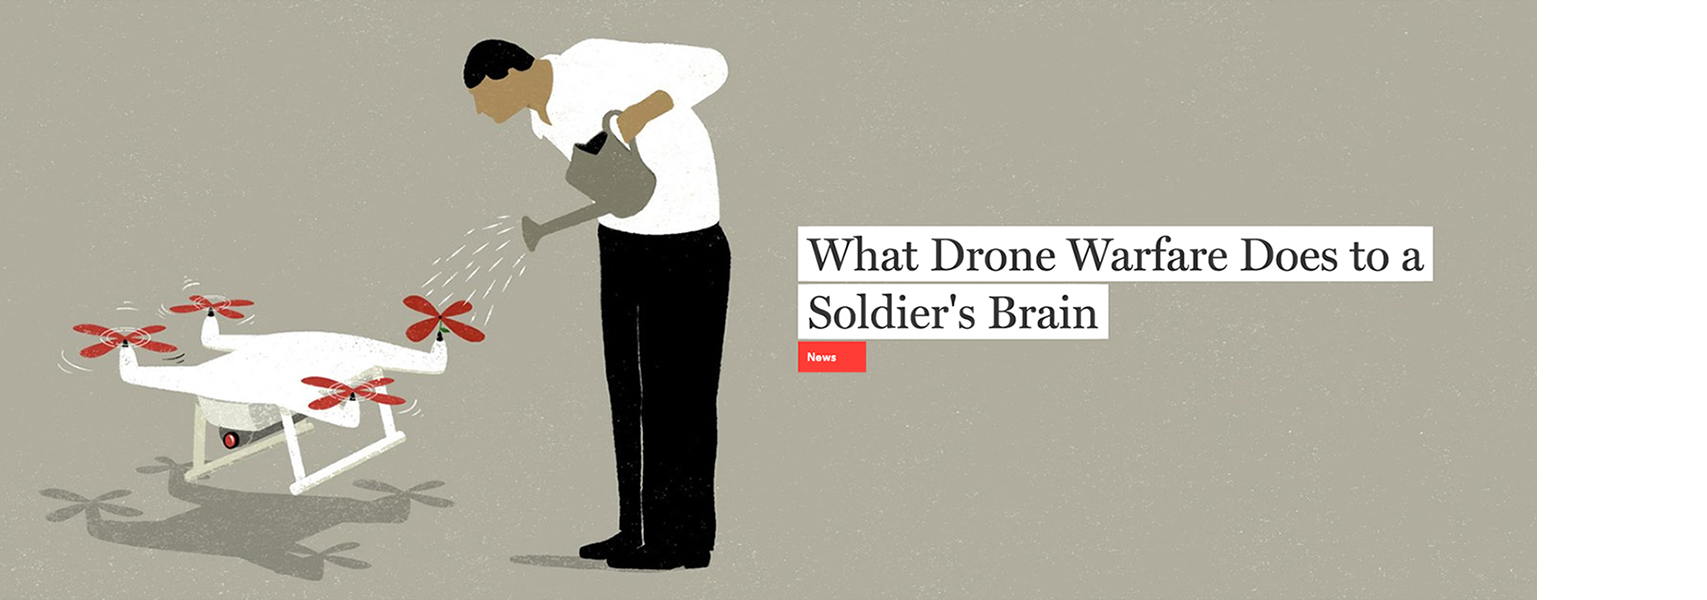 GQ- What drone warfare does to a soldier's brain